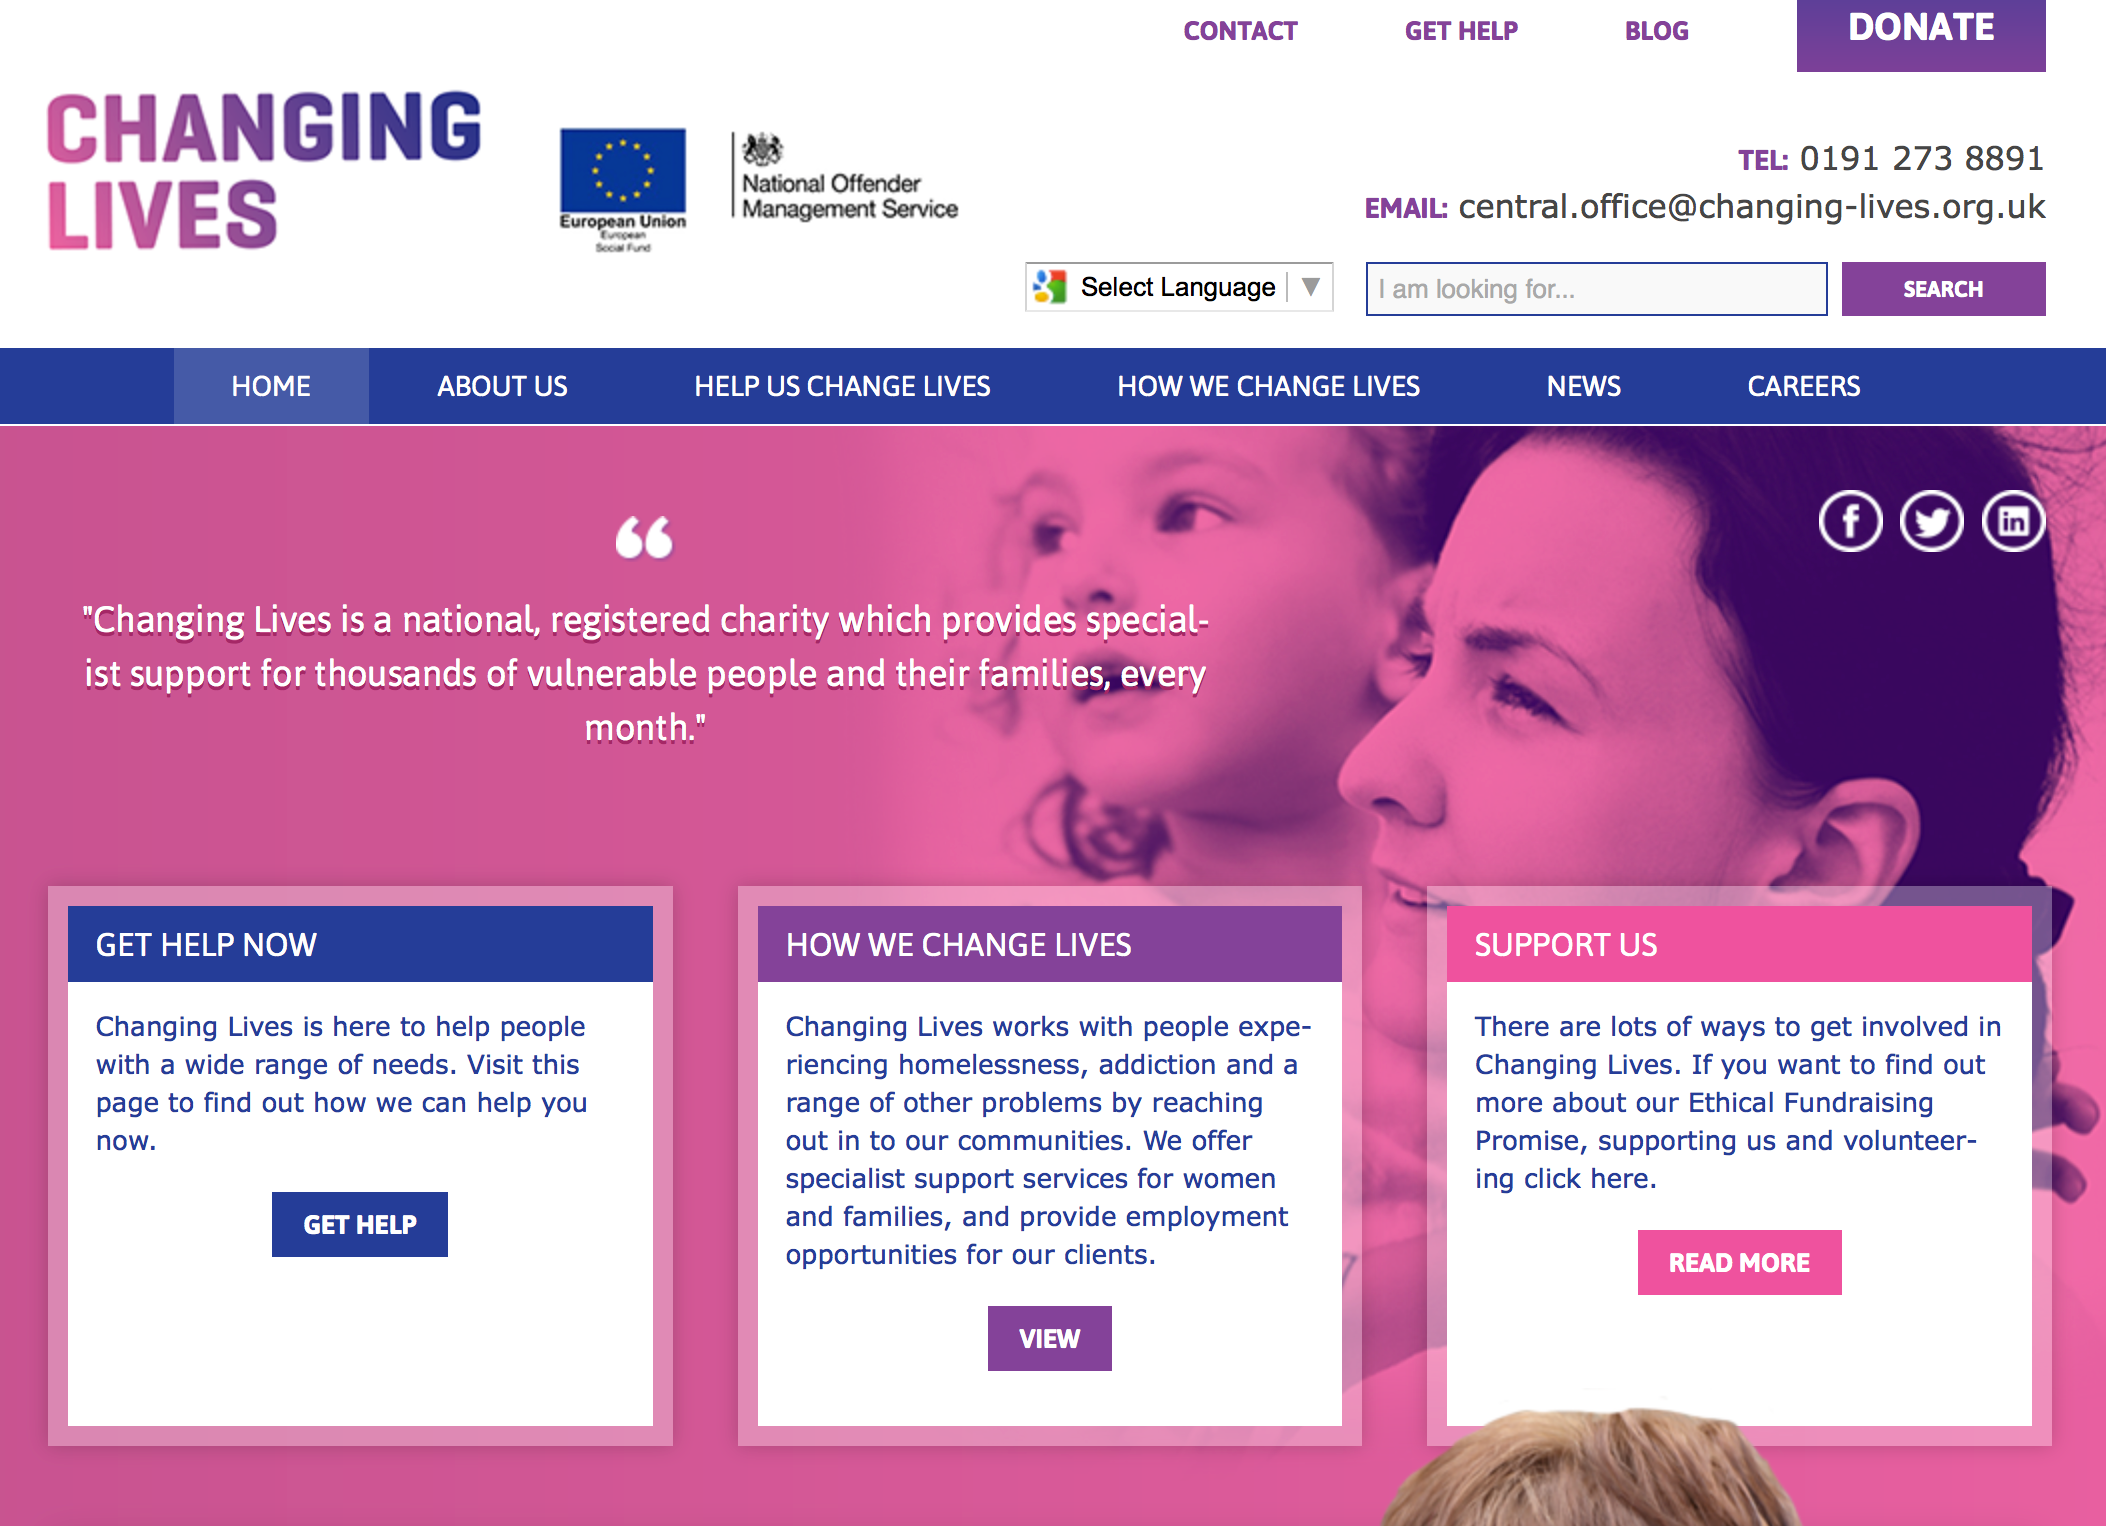 The Changing Lives website ( www.changing-lives.org.uk )